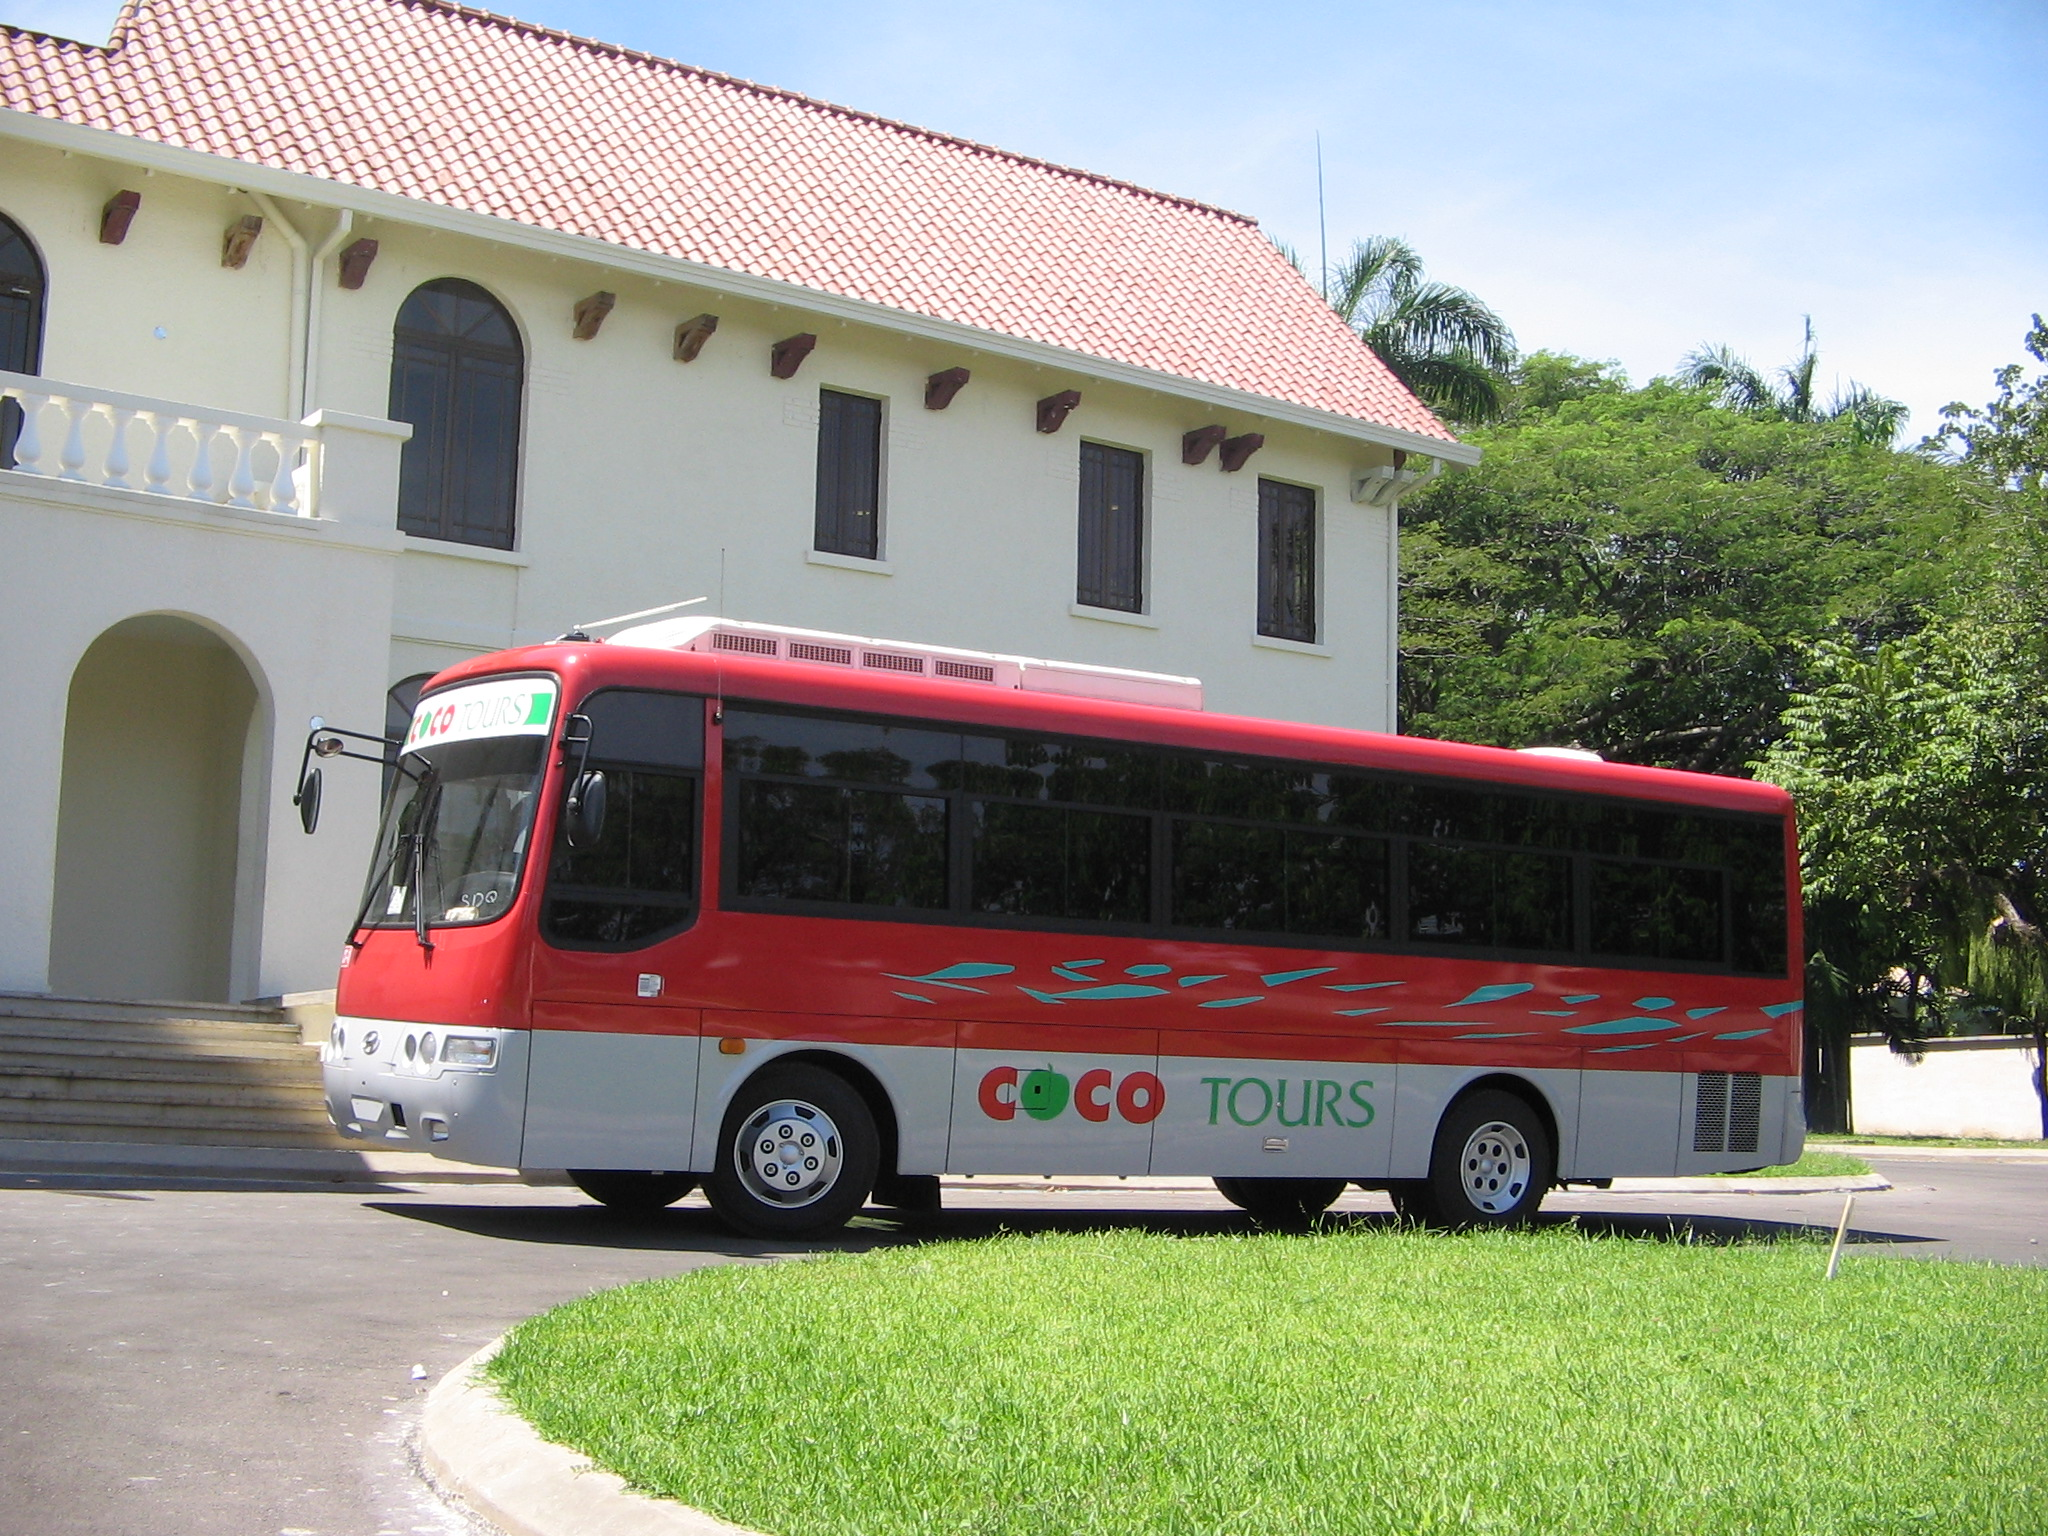 Larger Cocotours bus used on the route from Punta Cana to Puerto Plata